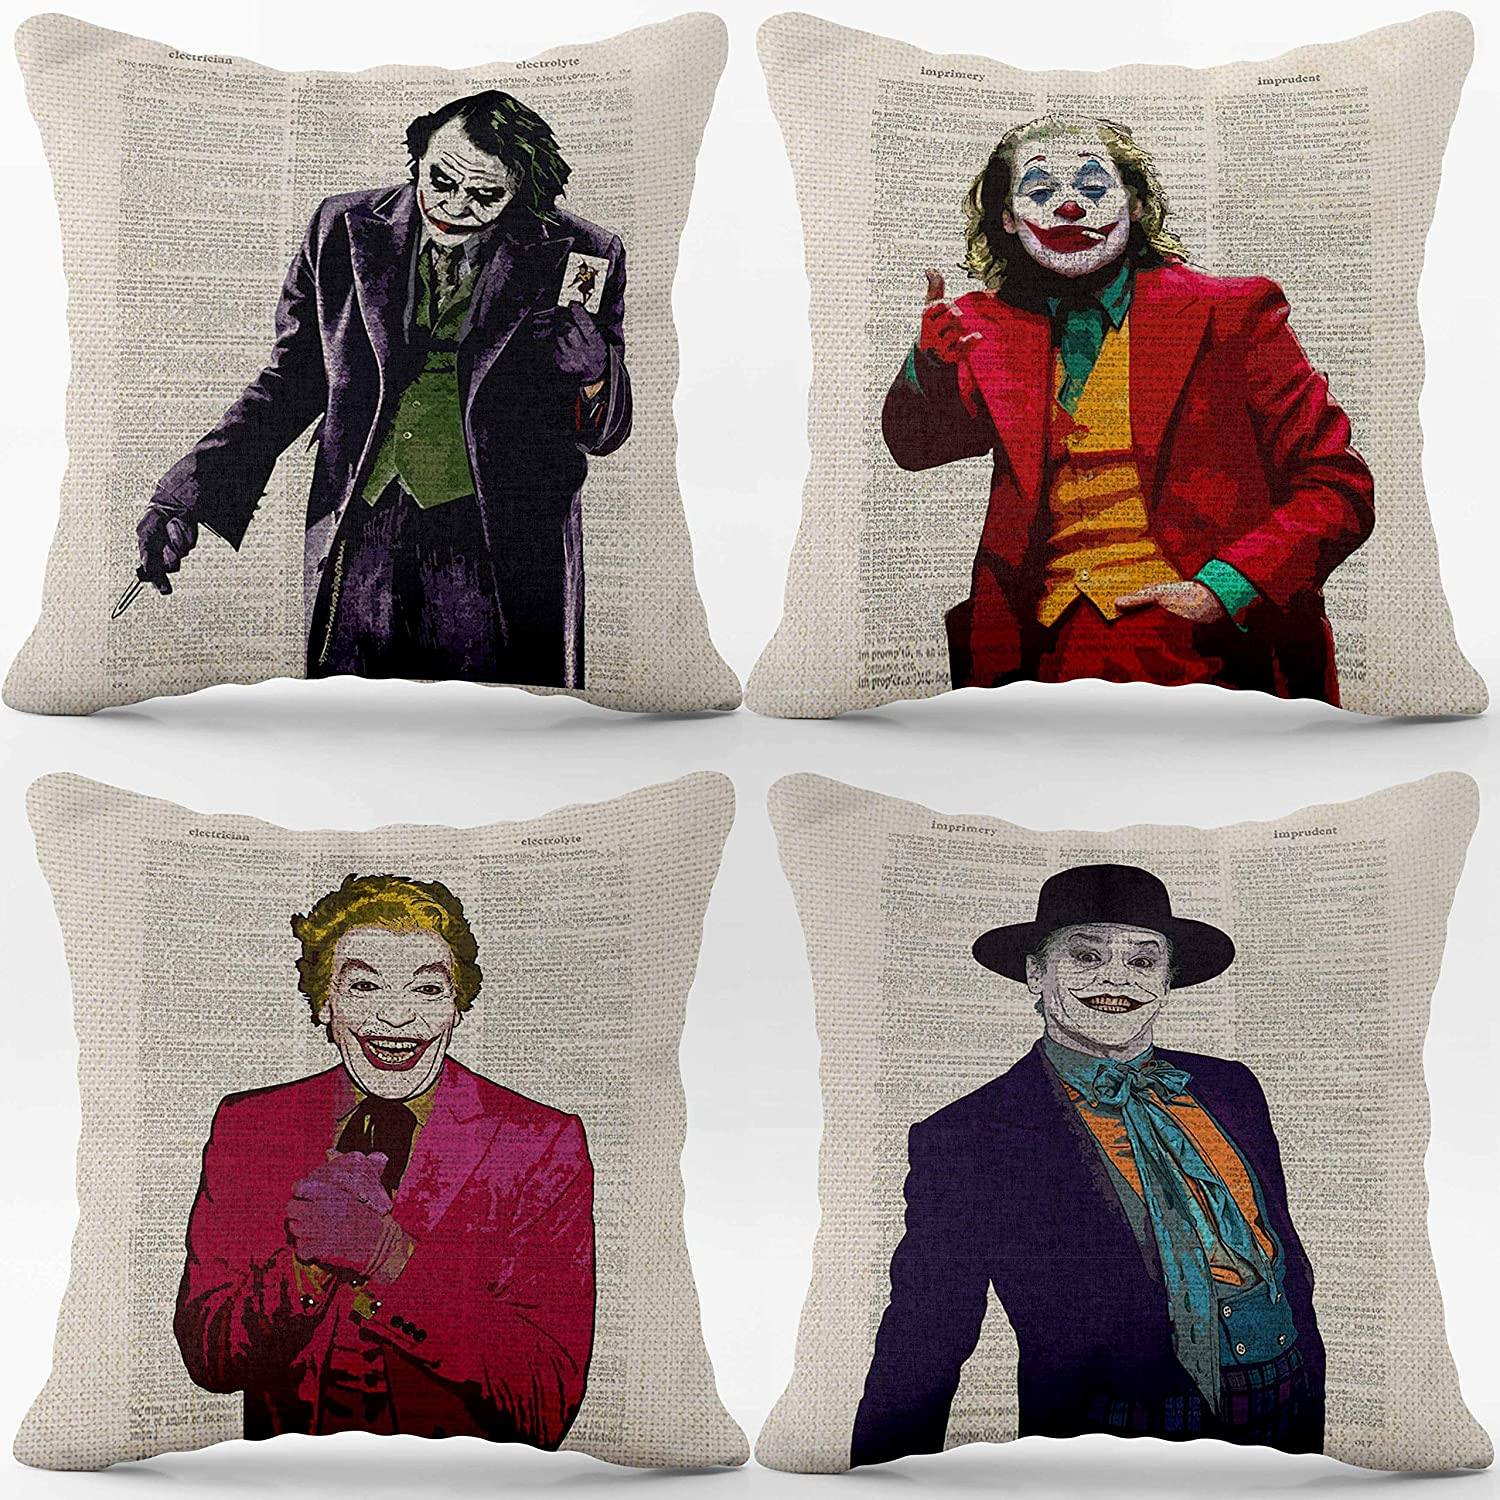 Joker Movie Linen Throw Pillow Case, 18 x 18 Inch Set of 4, Gift Joker Fan, GiftJoker Lover, Gift for Husband Man Cave Decor, Gift for Boyfriend, Brother, Cushion Cover for Sofa Couch Bed